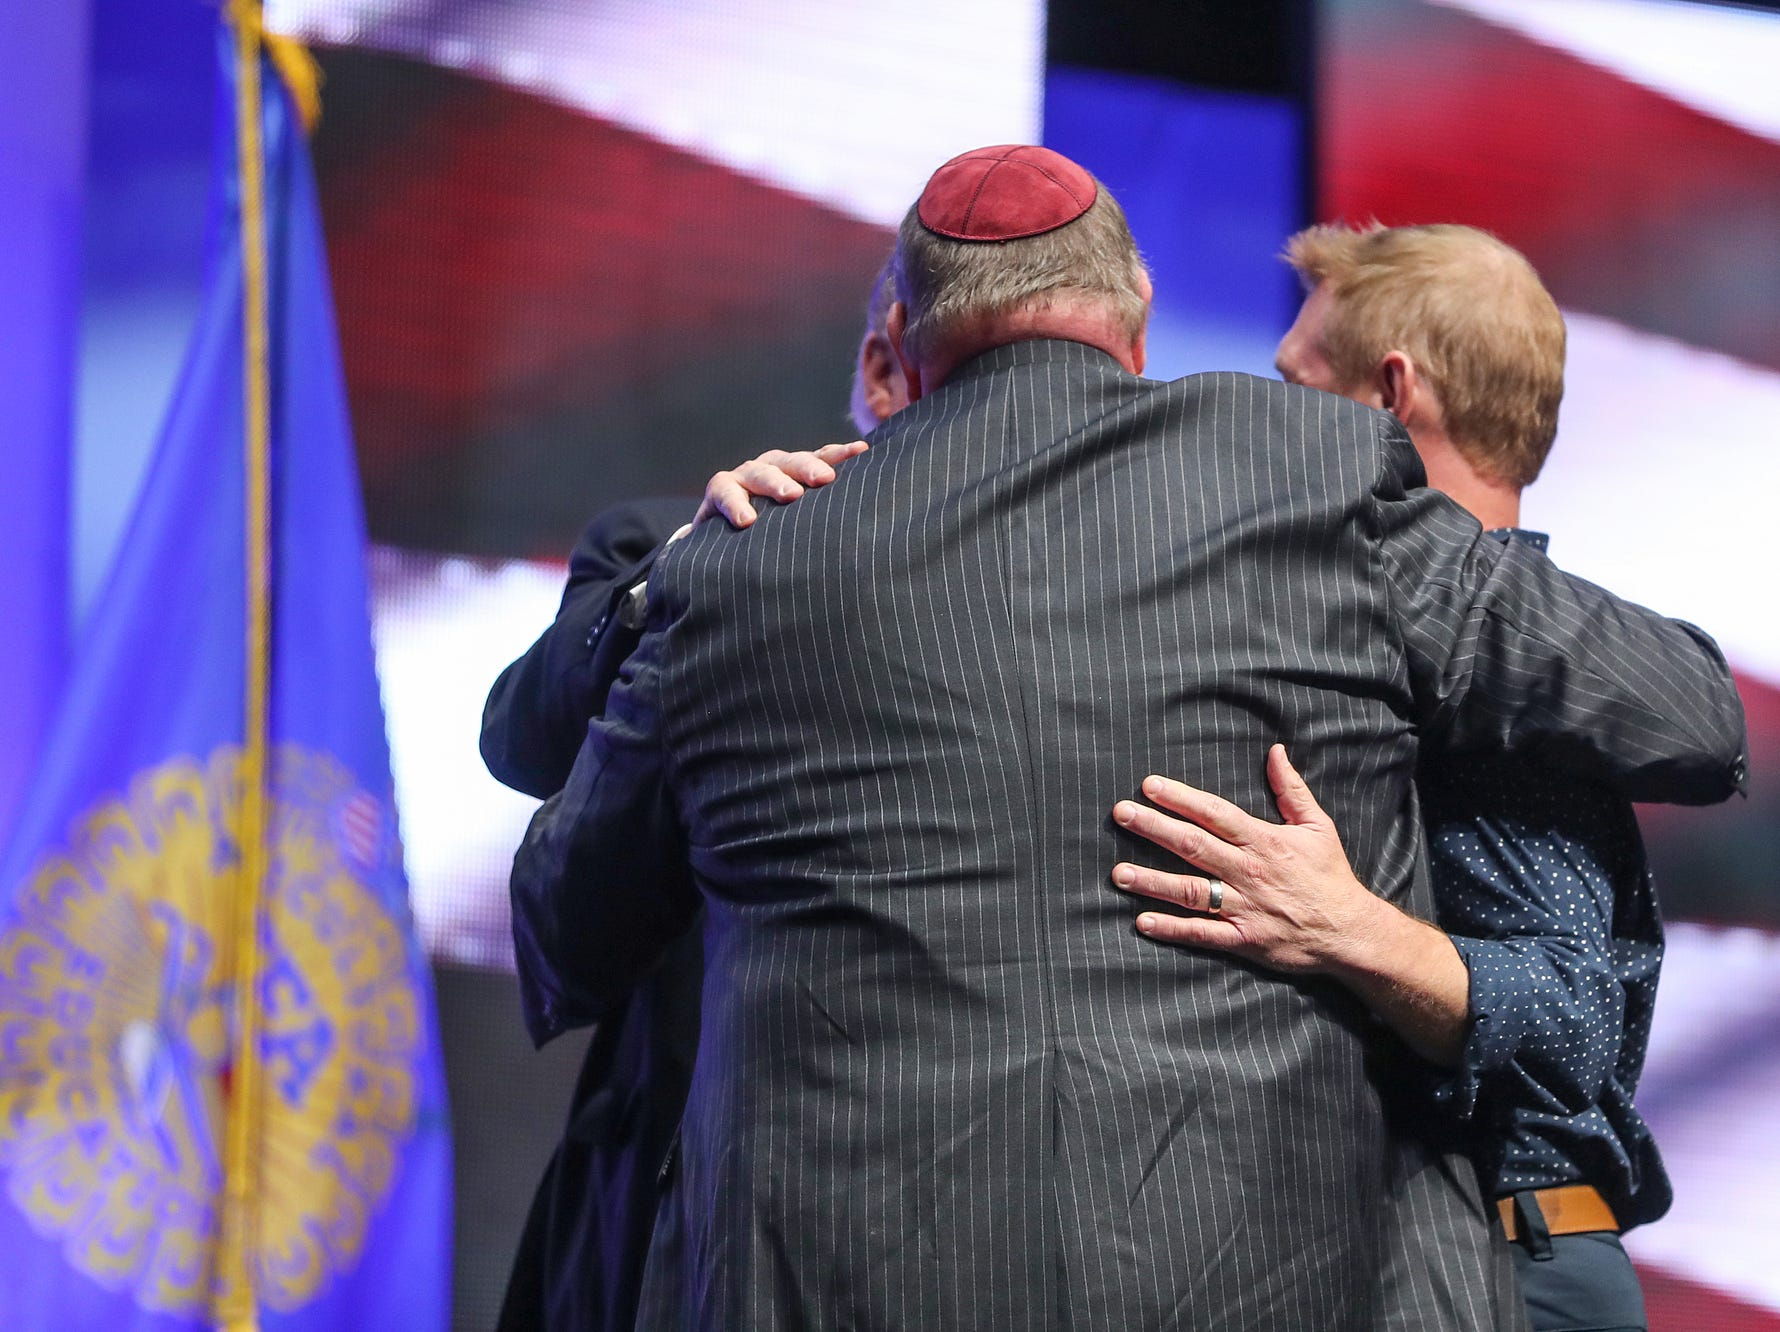 United States President Donald Trump shares a hug with Rabbi Benjamin Sendrow and Pastor Thom O'Leary, who he brought onstage to say prayers during his speech at the annual Future Farmers of America Convention and Expo at Banker's Life Fieldhouse in Indianapolis, Saturday, Oct. 27, 2018.